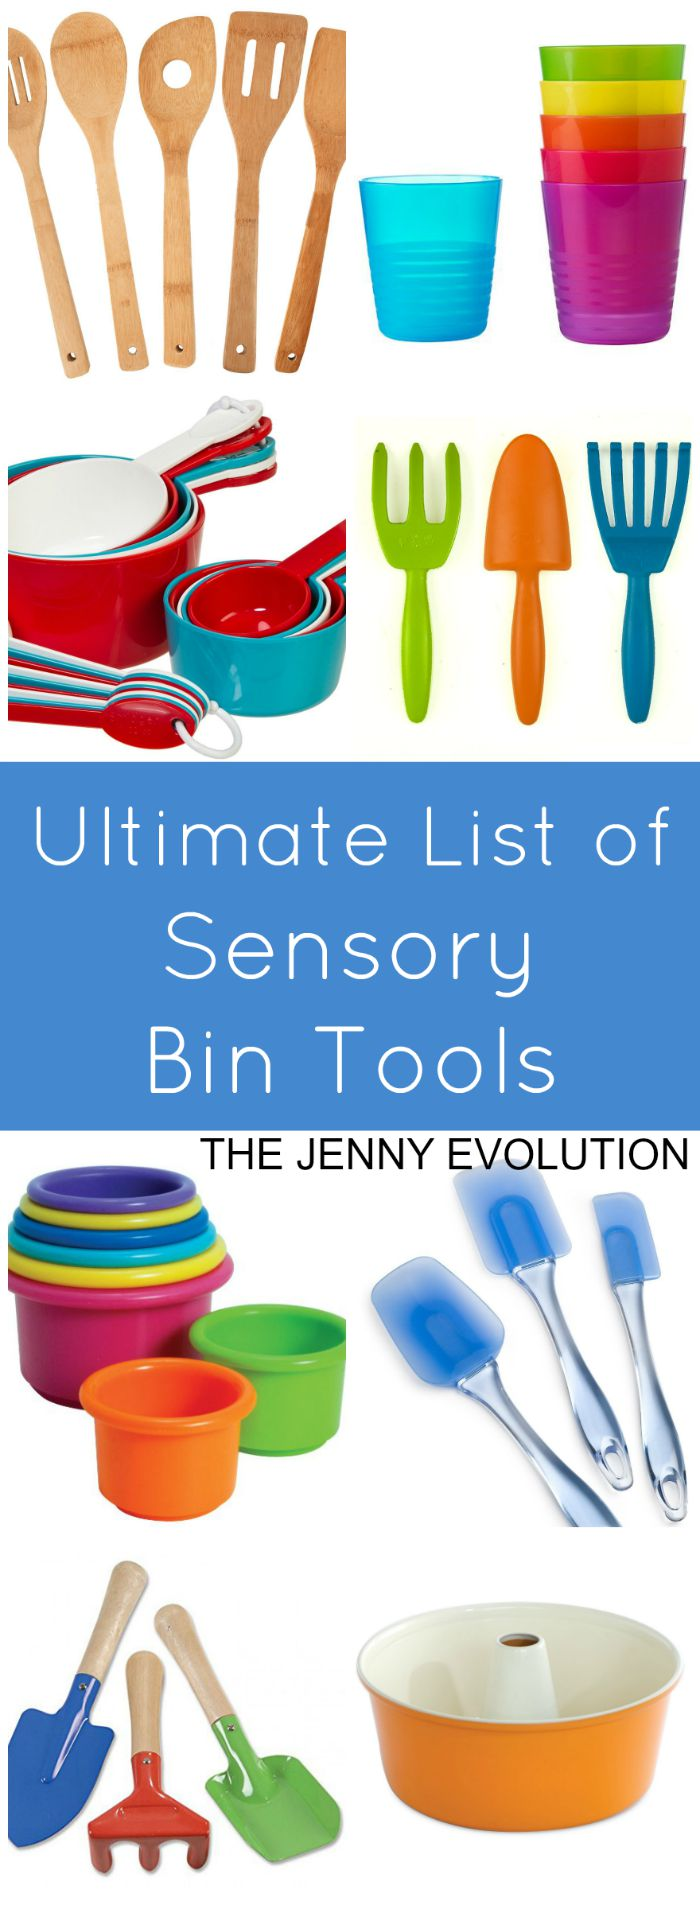 Ultimate List of Sensory Bin Tools | Mommy Evolution